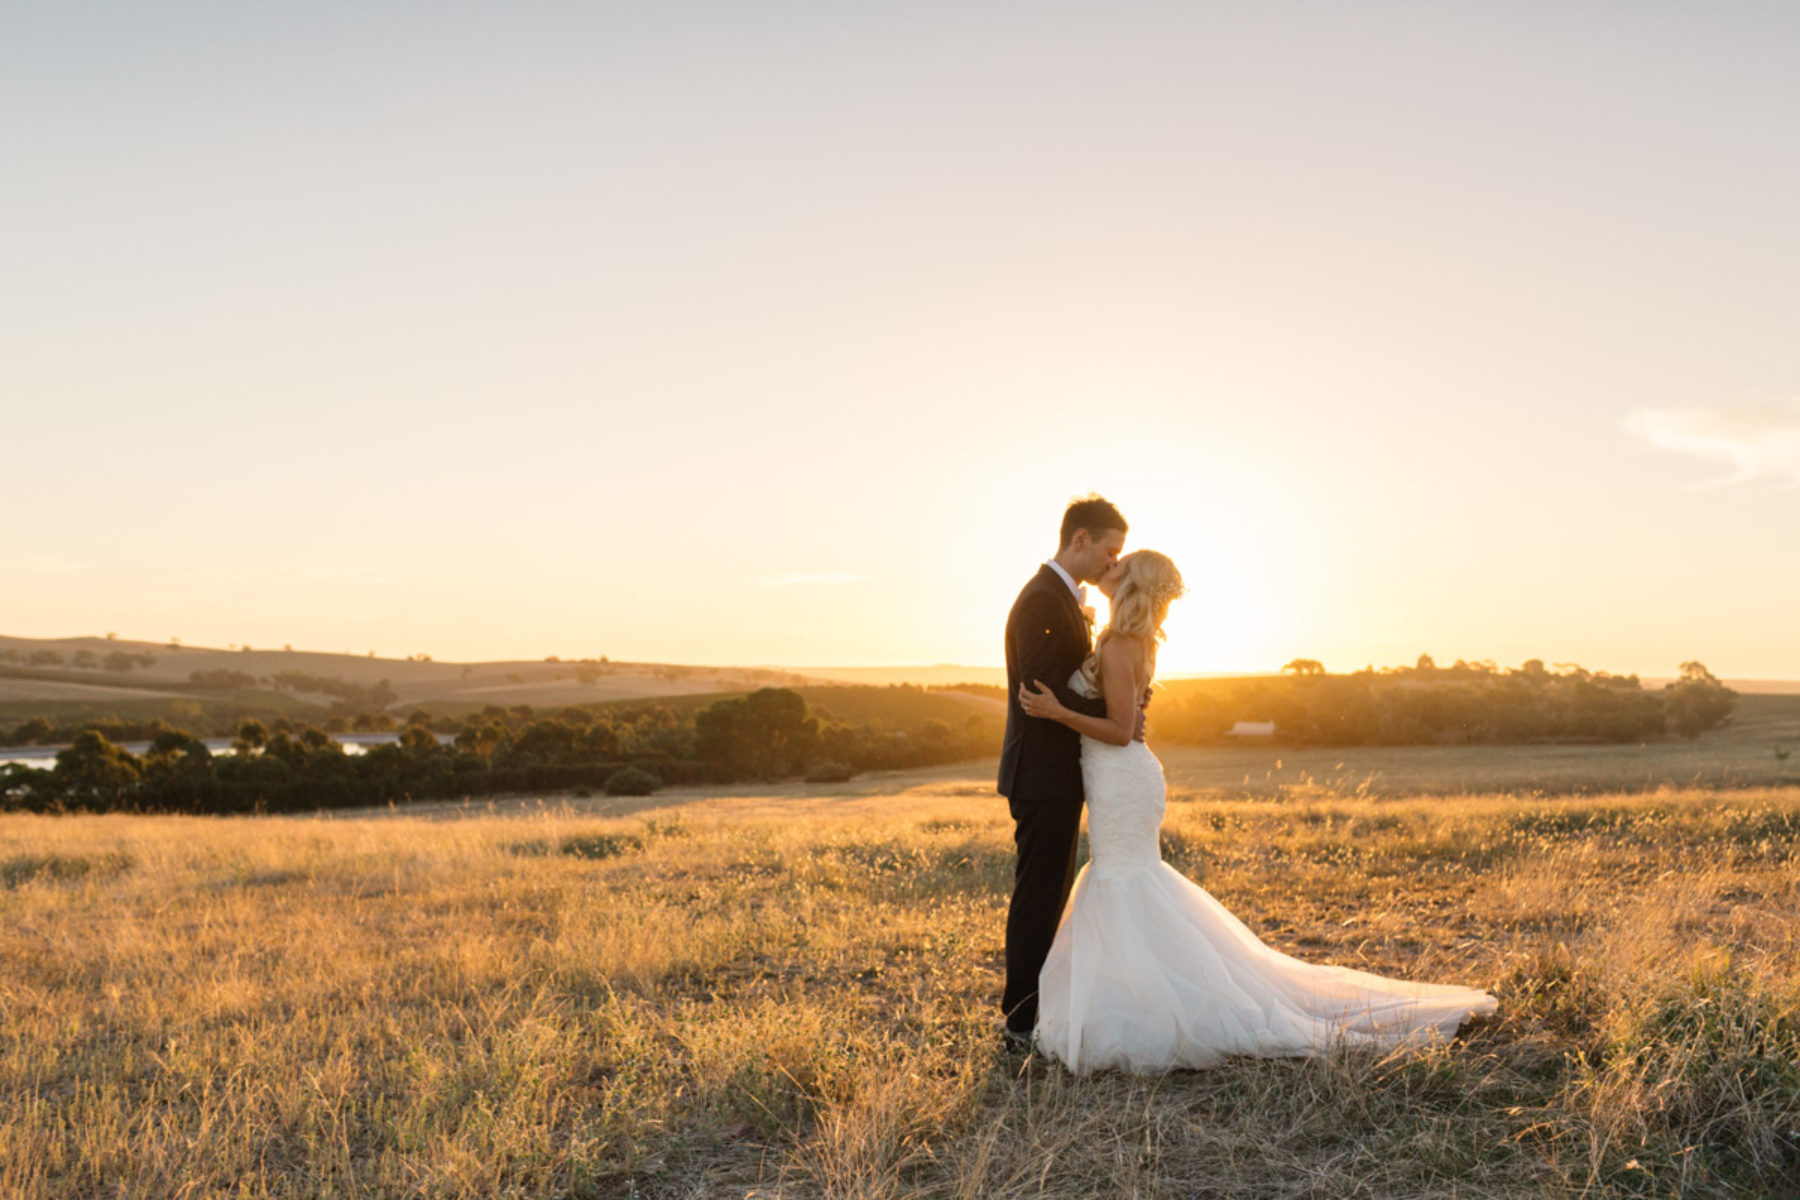 McLaren Vale wedding photographer Wes Beelders